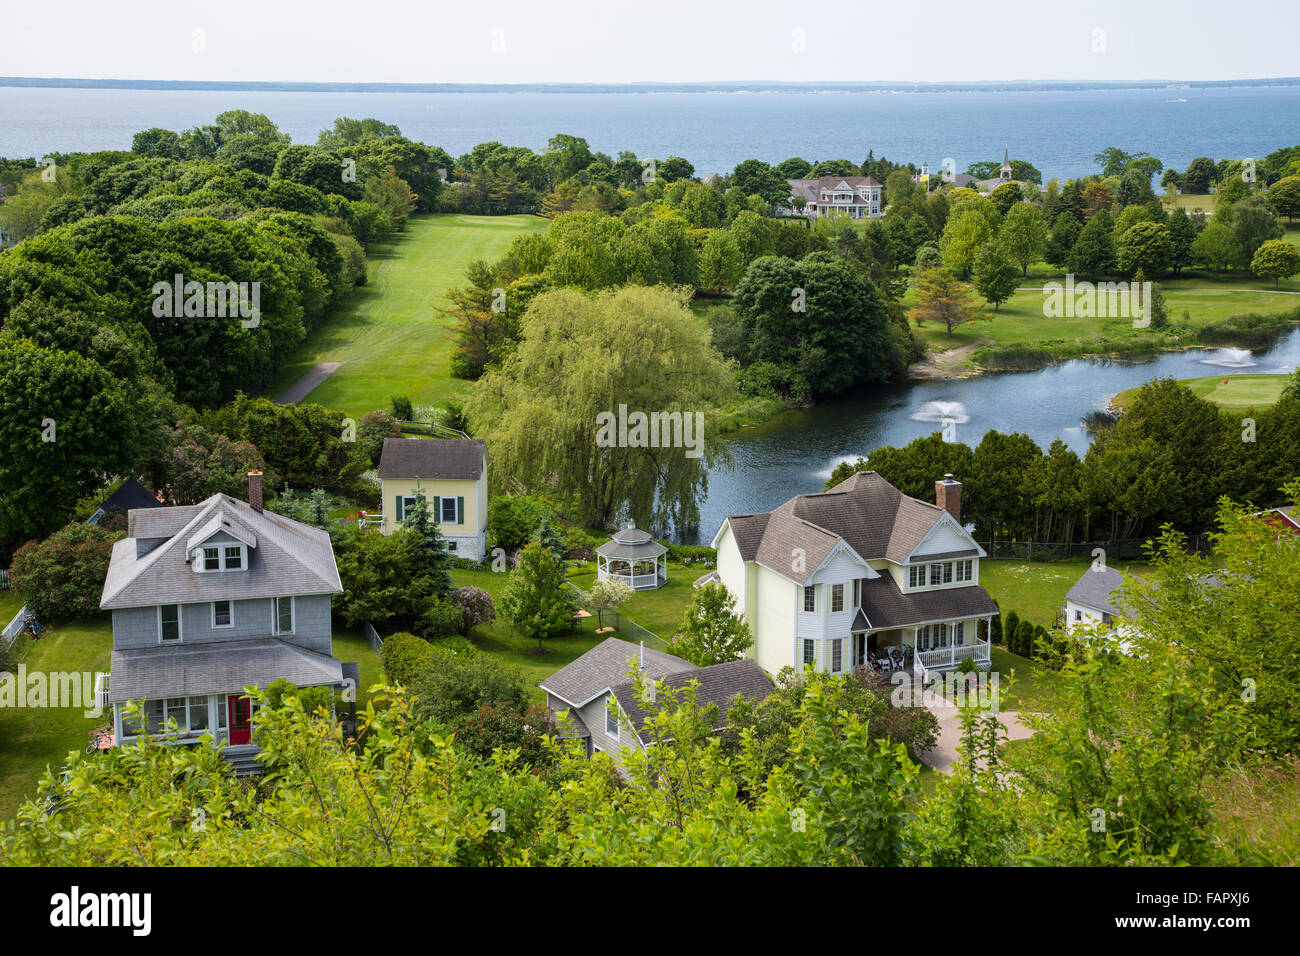 View from Fort Mackinac of houses on resort island of Mackinac Island in Michigan - Stock Image